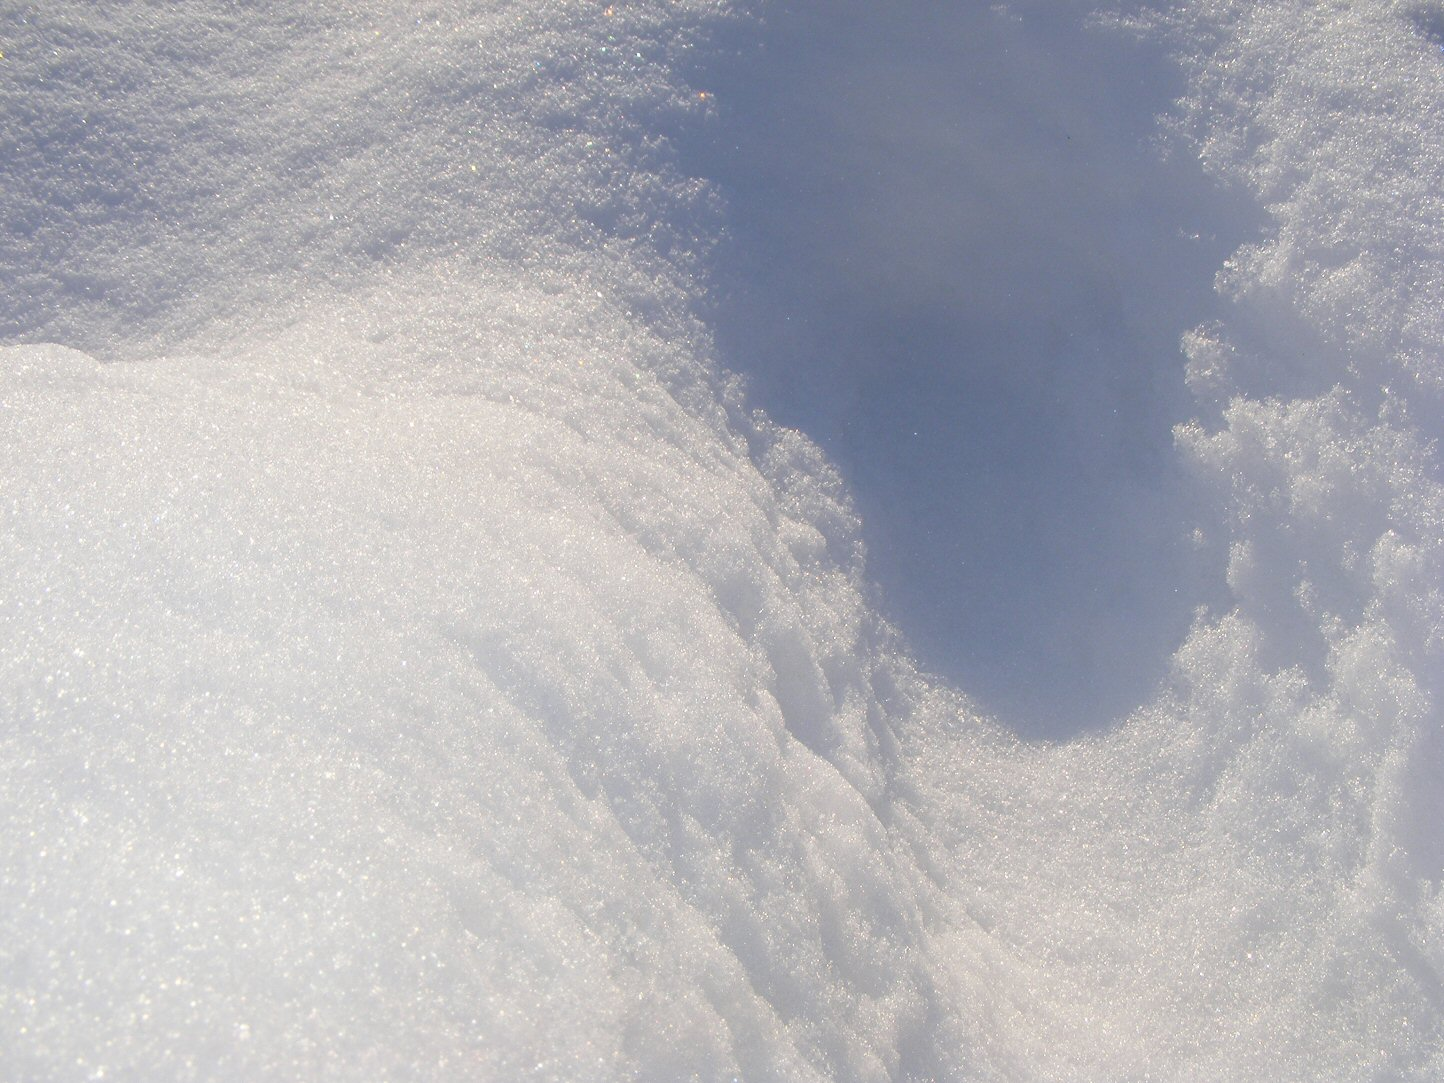 Footprint in the Snow